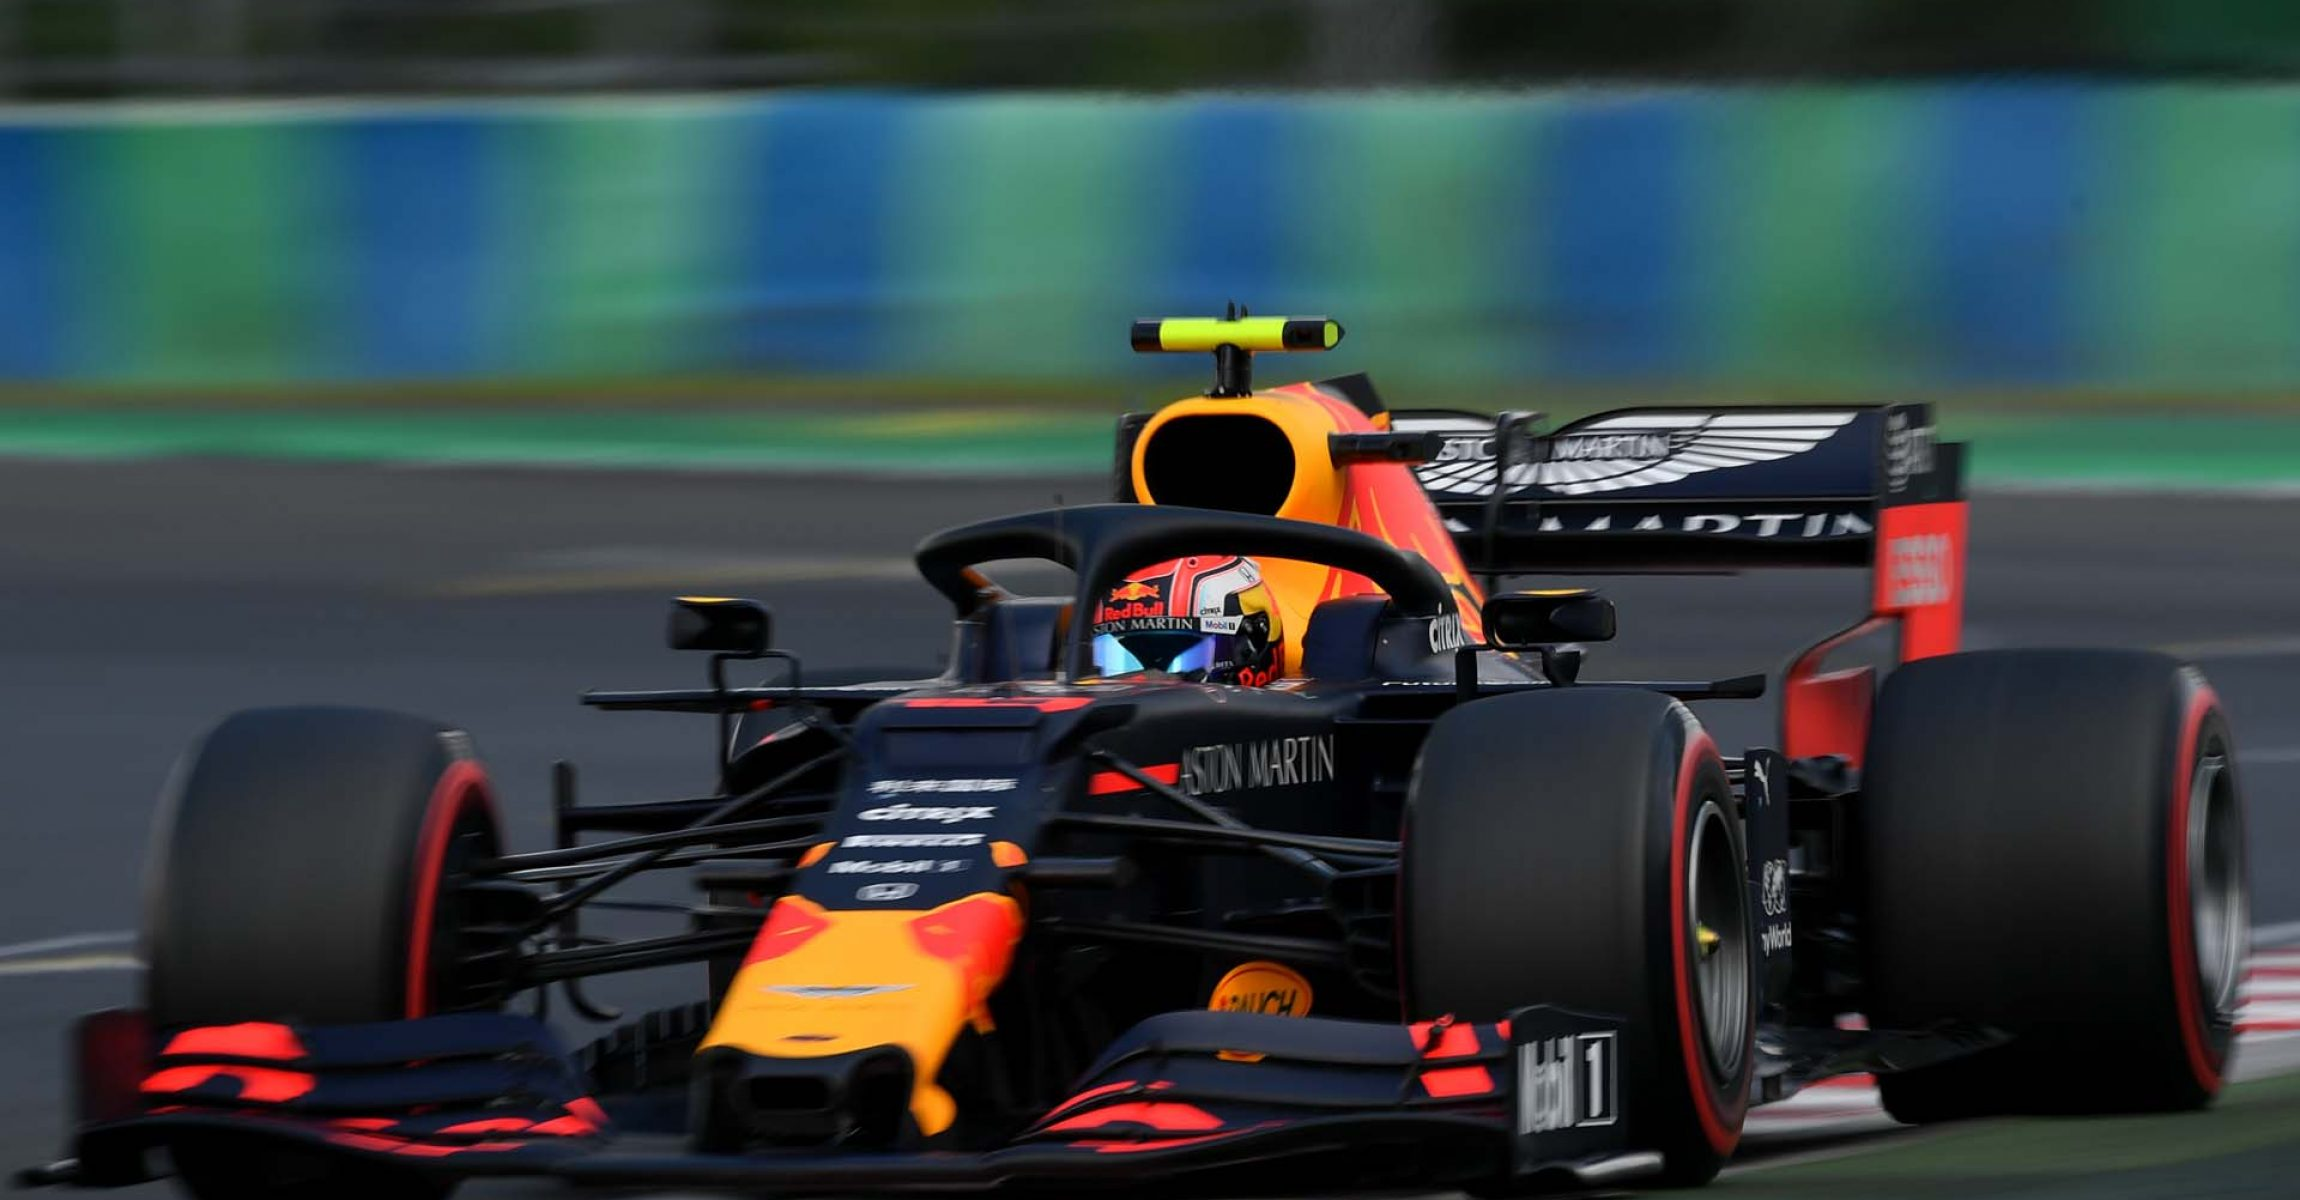 BUDAPEST, HUNGARY - AUGUST 03: Pierre Gasly of France driving the (10) Aston Martin Red Bull Racing RB15 on track during qualifying for the F1 Grand Prix of Hungary at Hungaroring on August 03, 2019 in Budapest, Hungary. (Photo by Dan Mullan/Getty Images) // Getty Images / Red Bull Content Pool  // AP-2157RDJUS2111 // Usage for editorial use only // Please go to www.redbullcontentpool.com for further information. //